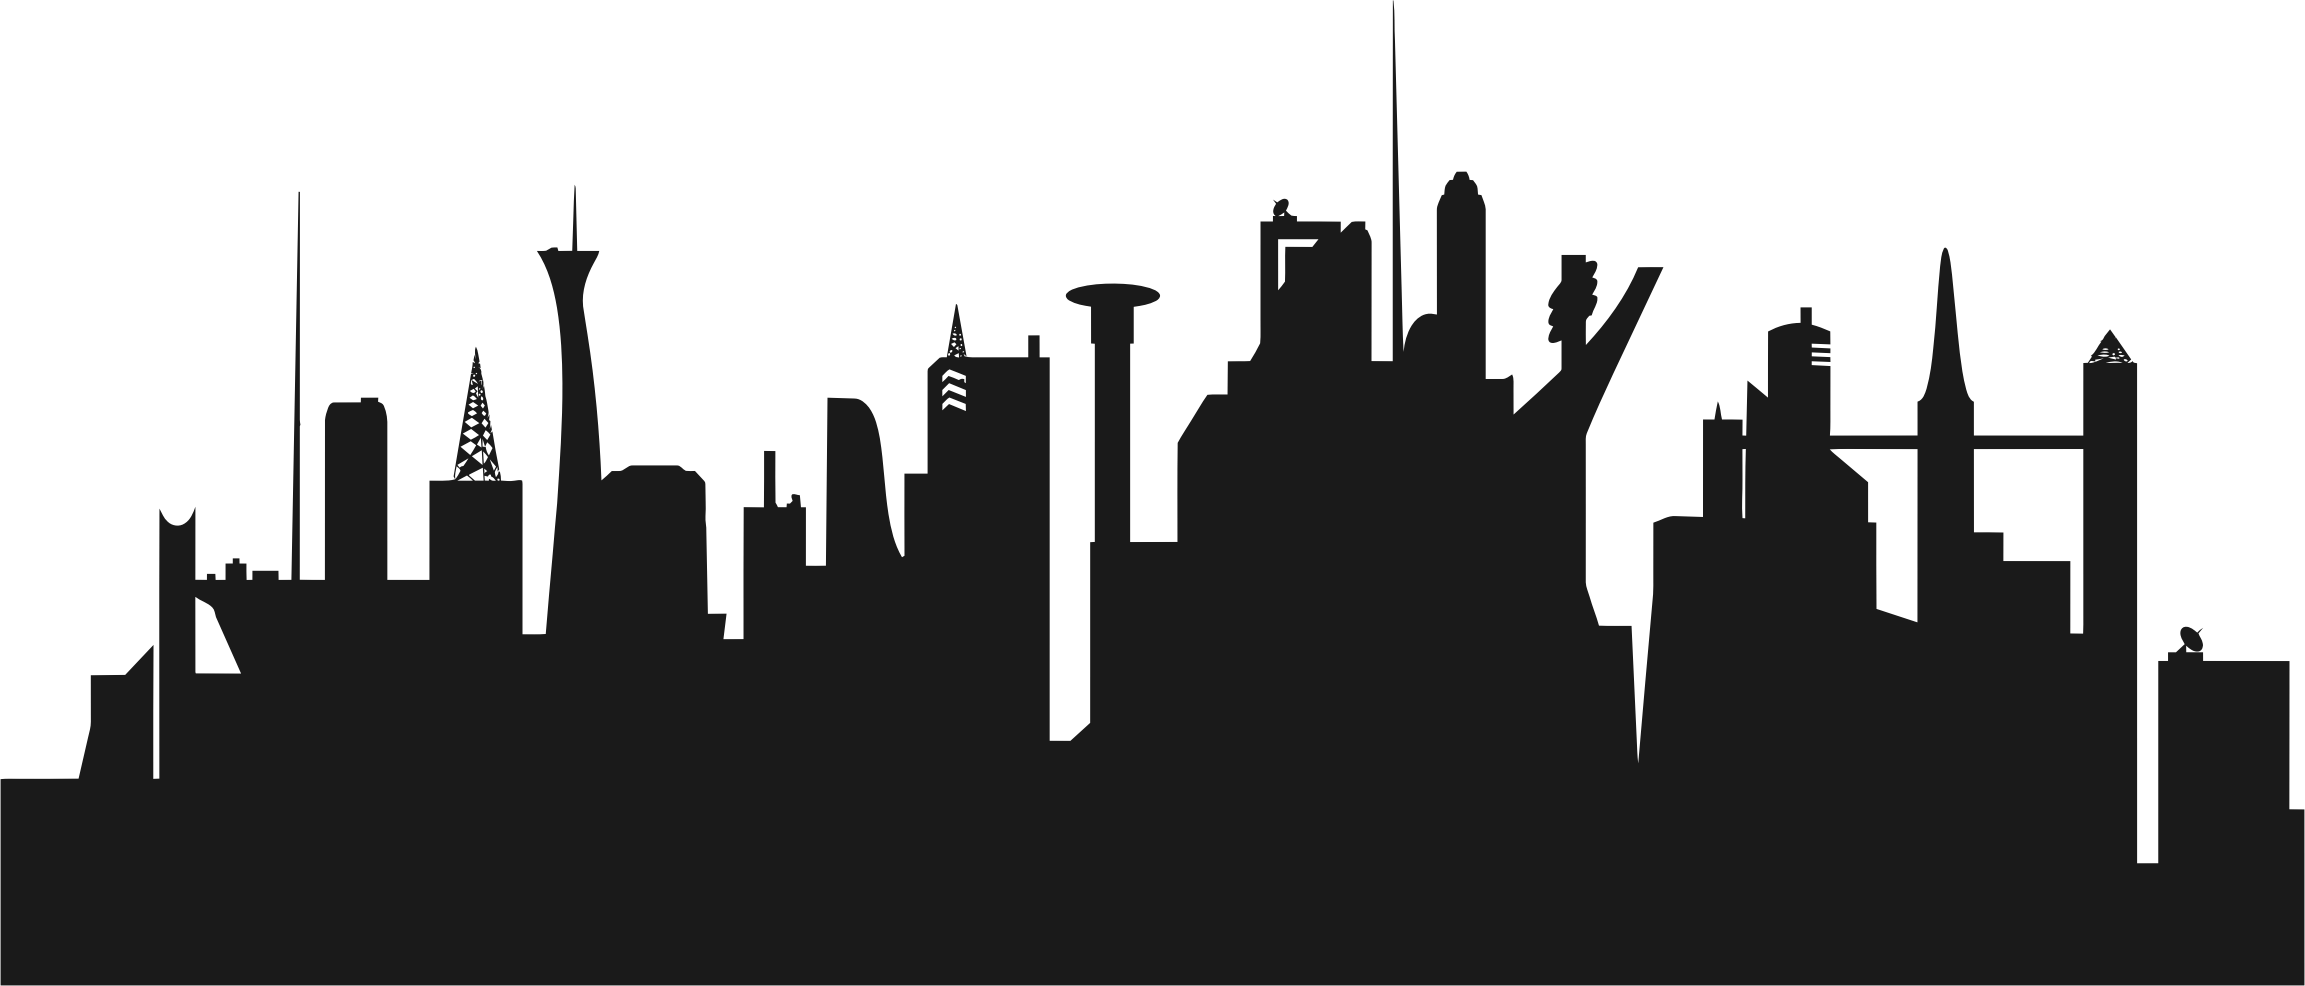 Vegas vector stratosphere silhouette. Futuristic city skyline icons